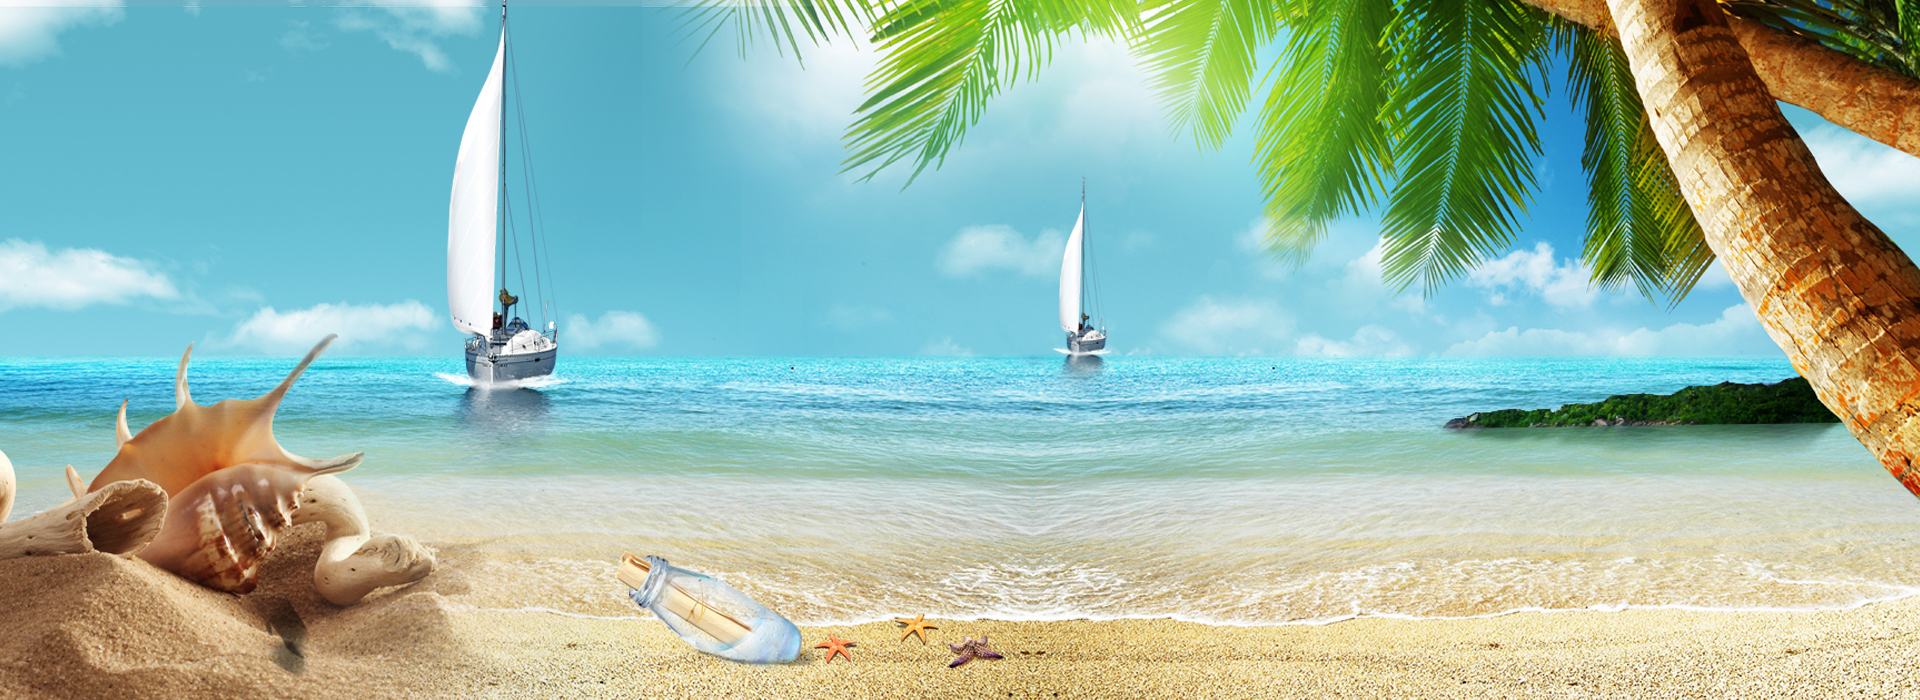 sandy beach banner  sandy  beach  banner background image for free download